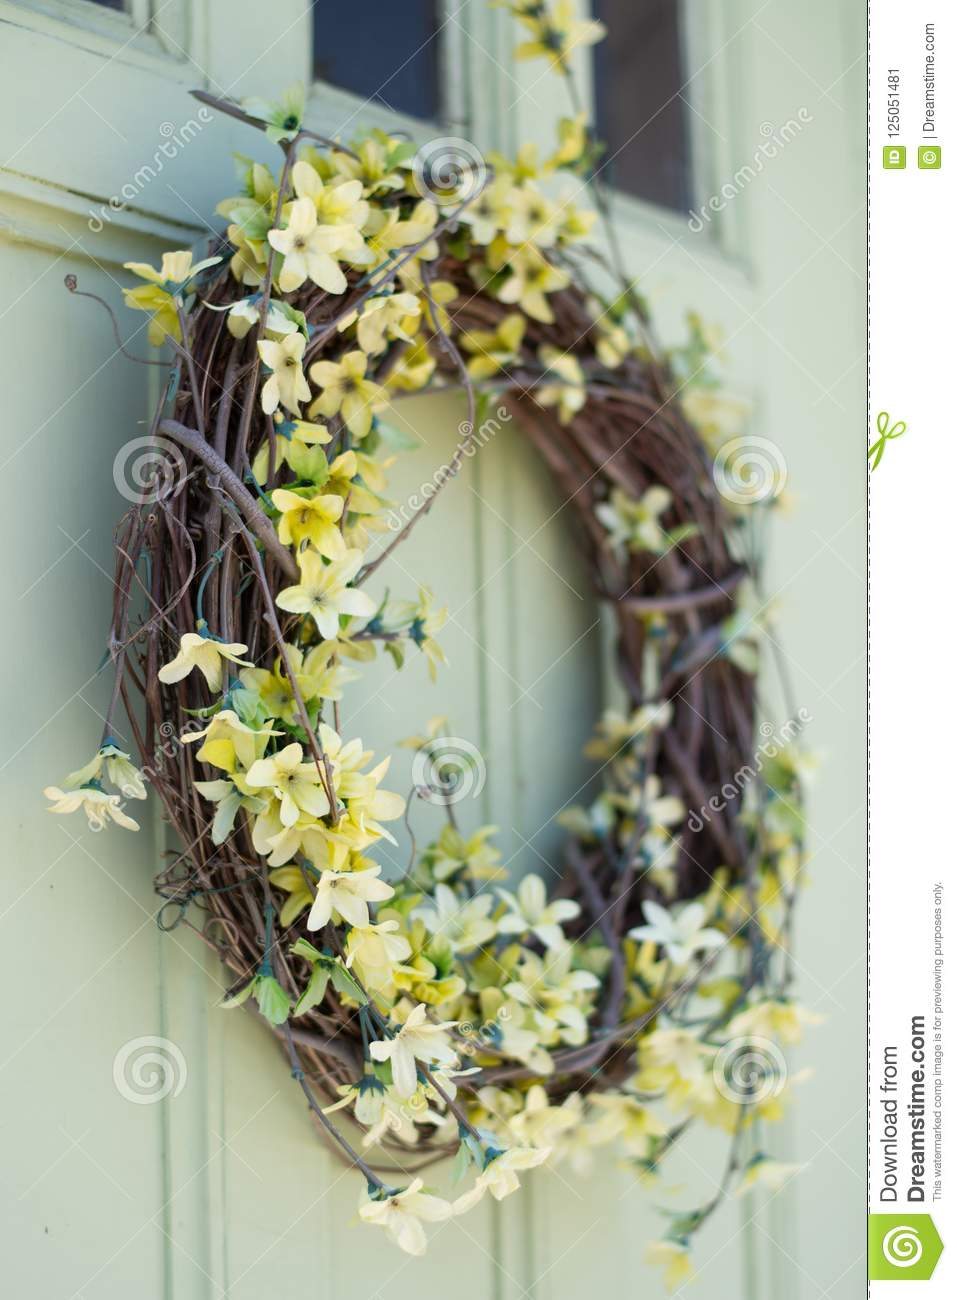 Decorative Wreath With Yellow Flowers Stock Image Image Of Floral Athol 125051481